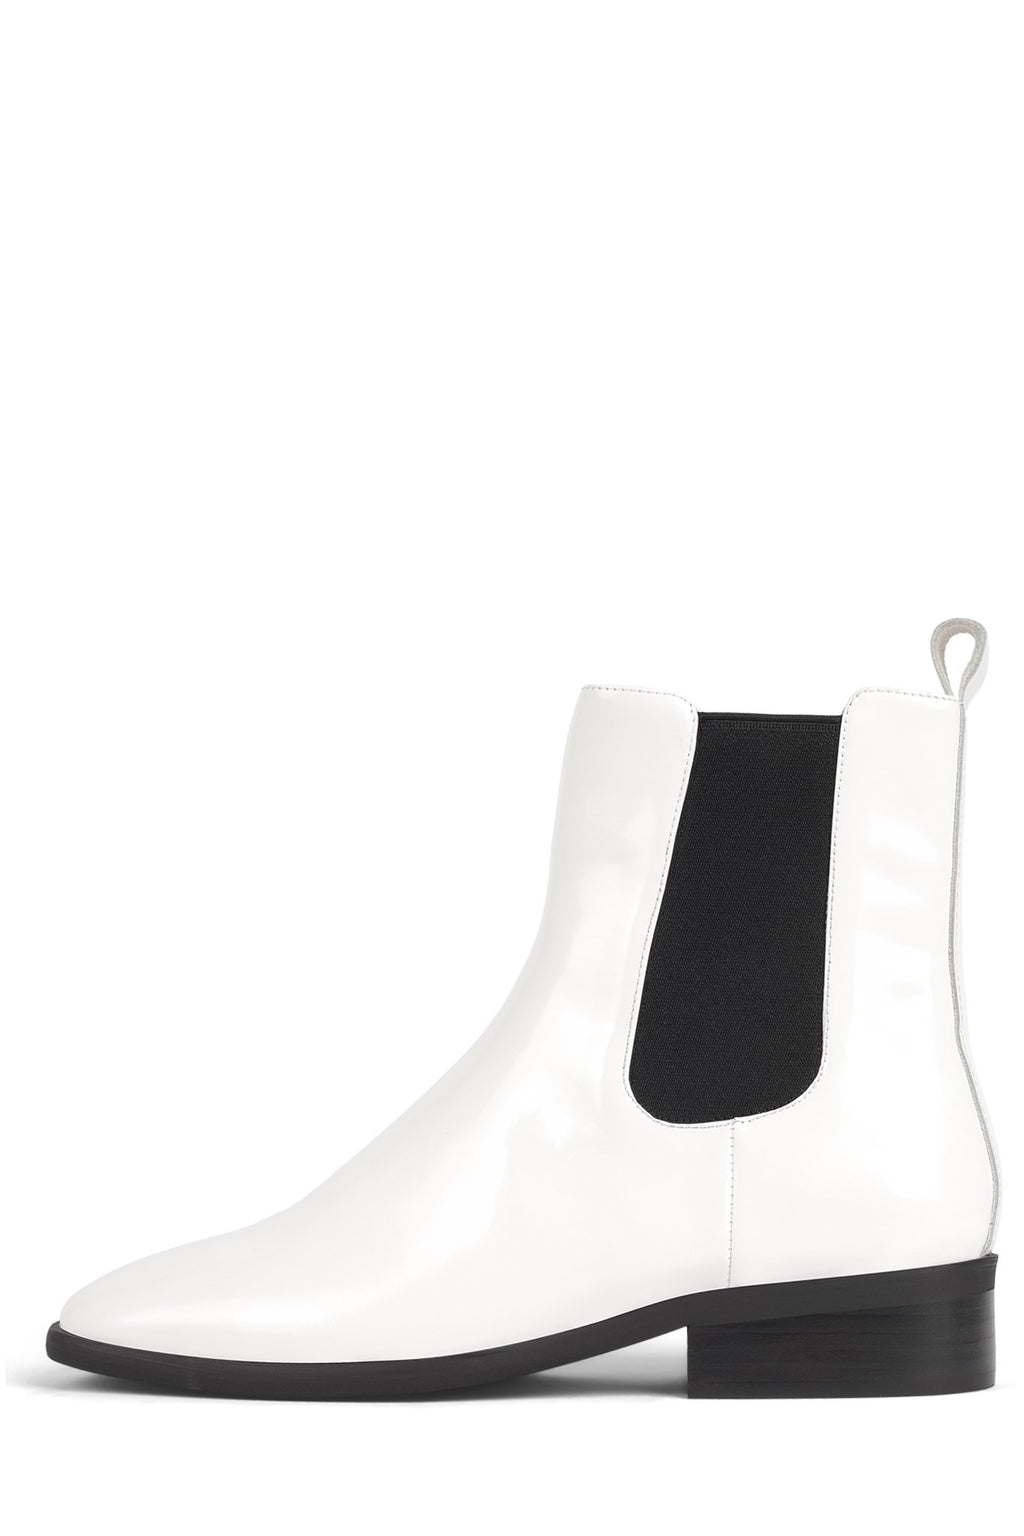 EMRYS Jeffrey Campbell White Box Black 6